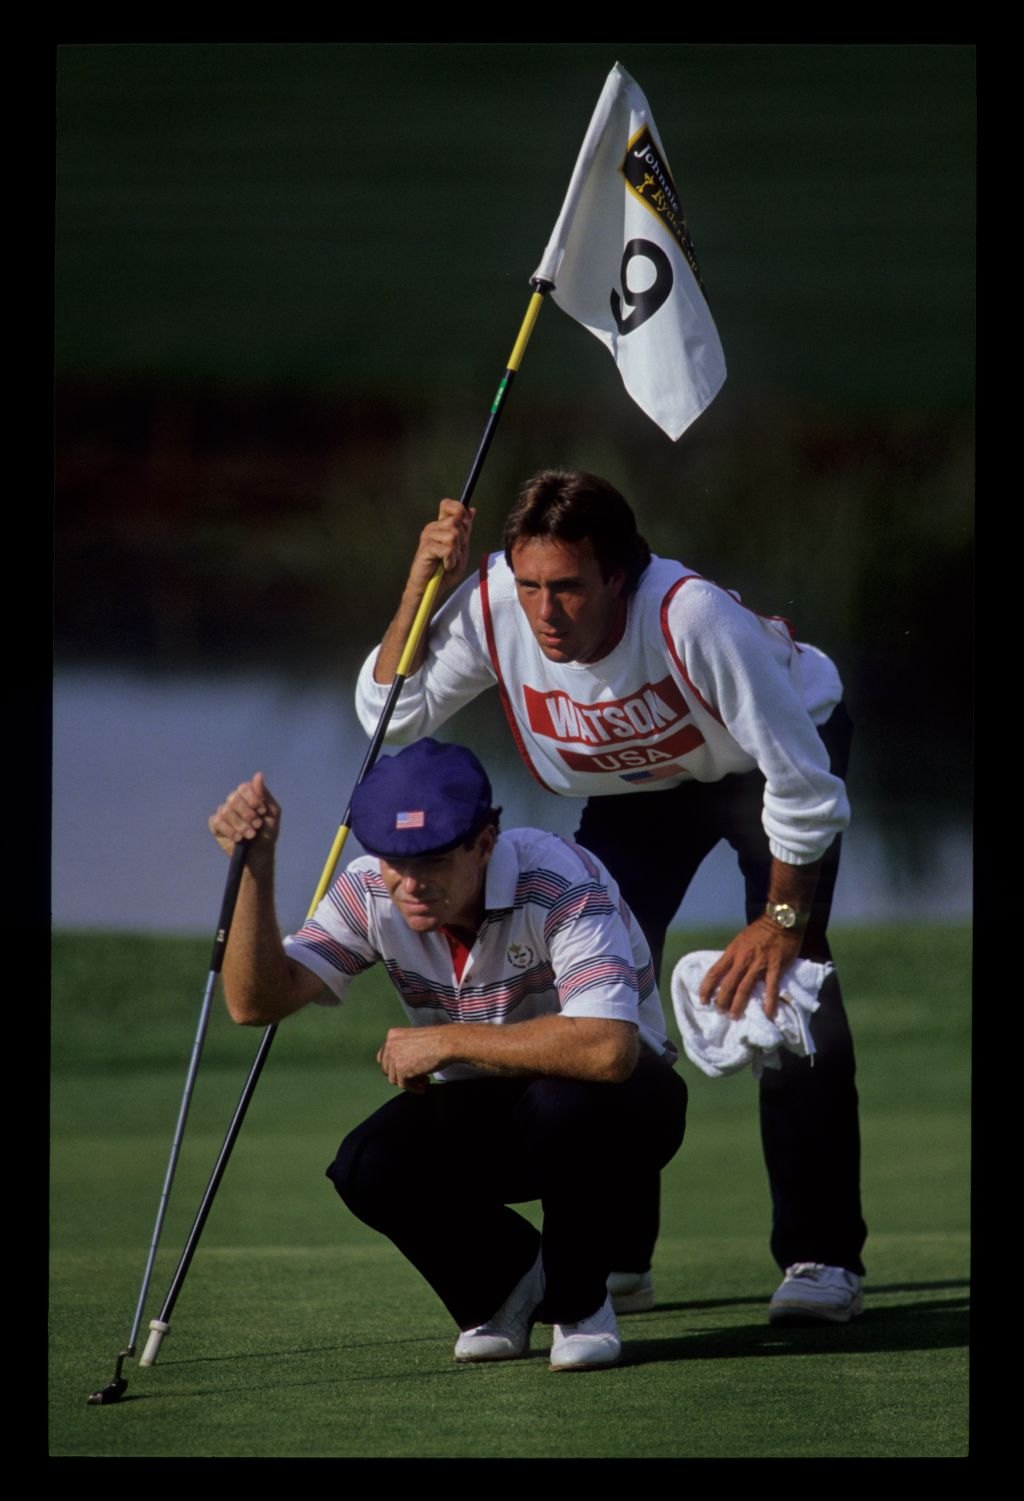 Tom Watson and his caddie staring intently at the line of a putt on the ninth green at the 1989 Ryder Cup